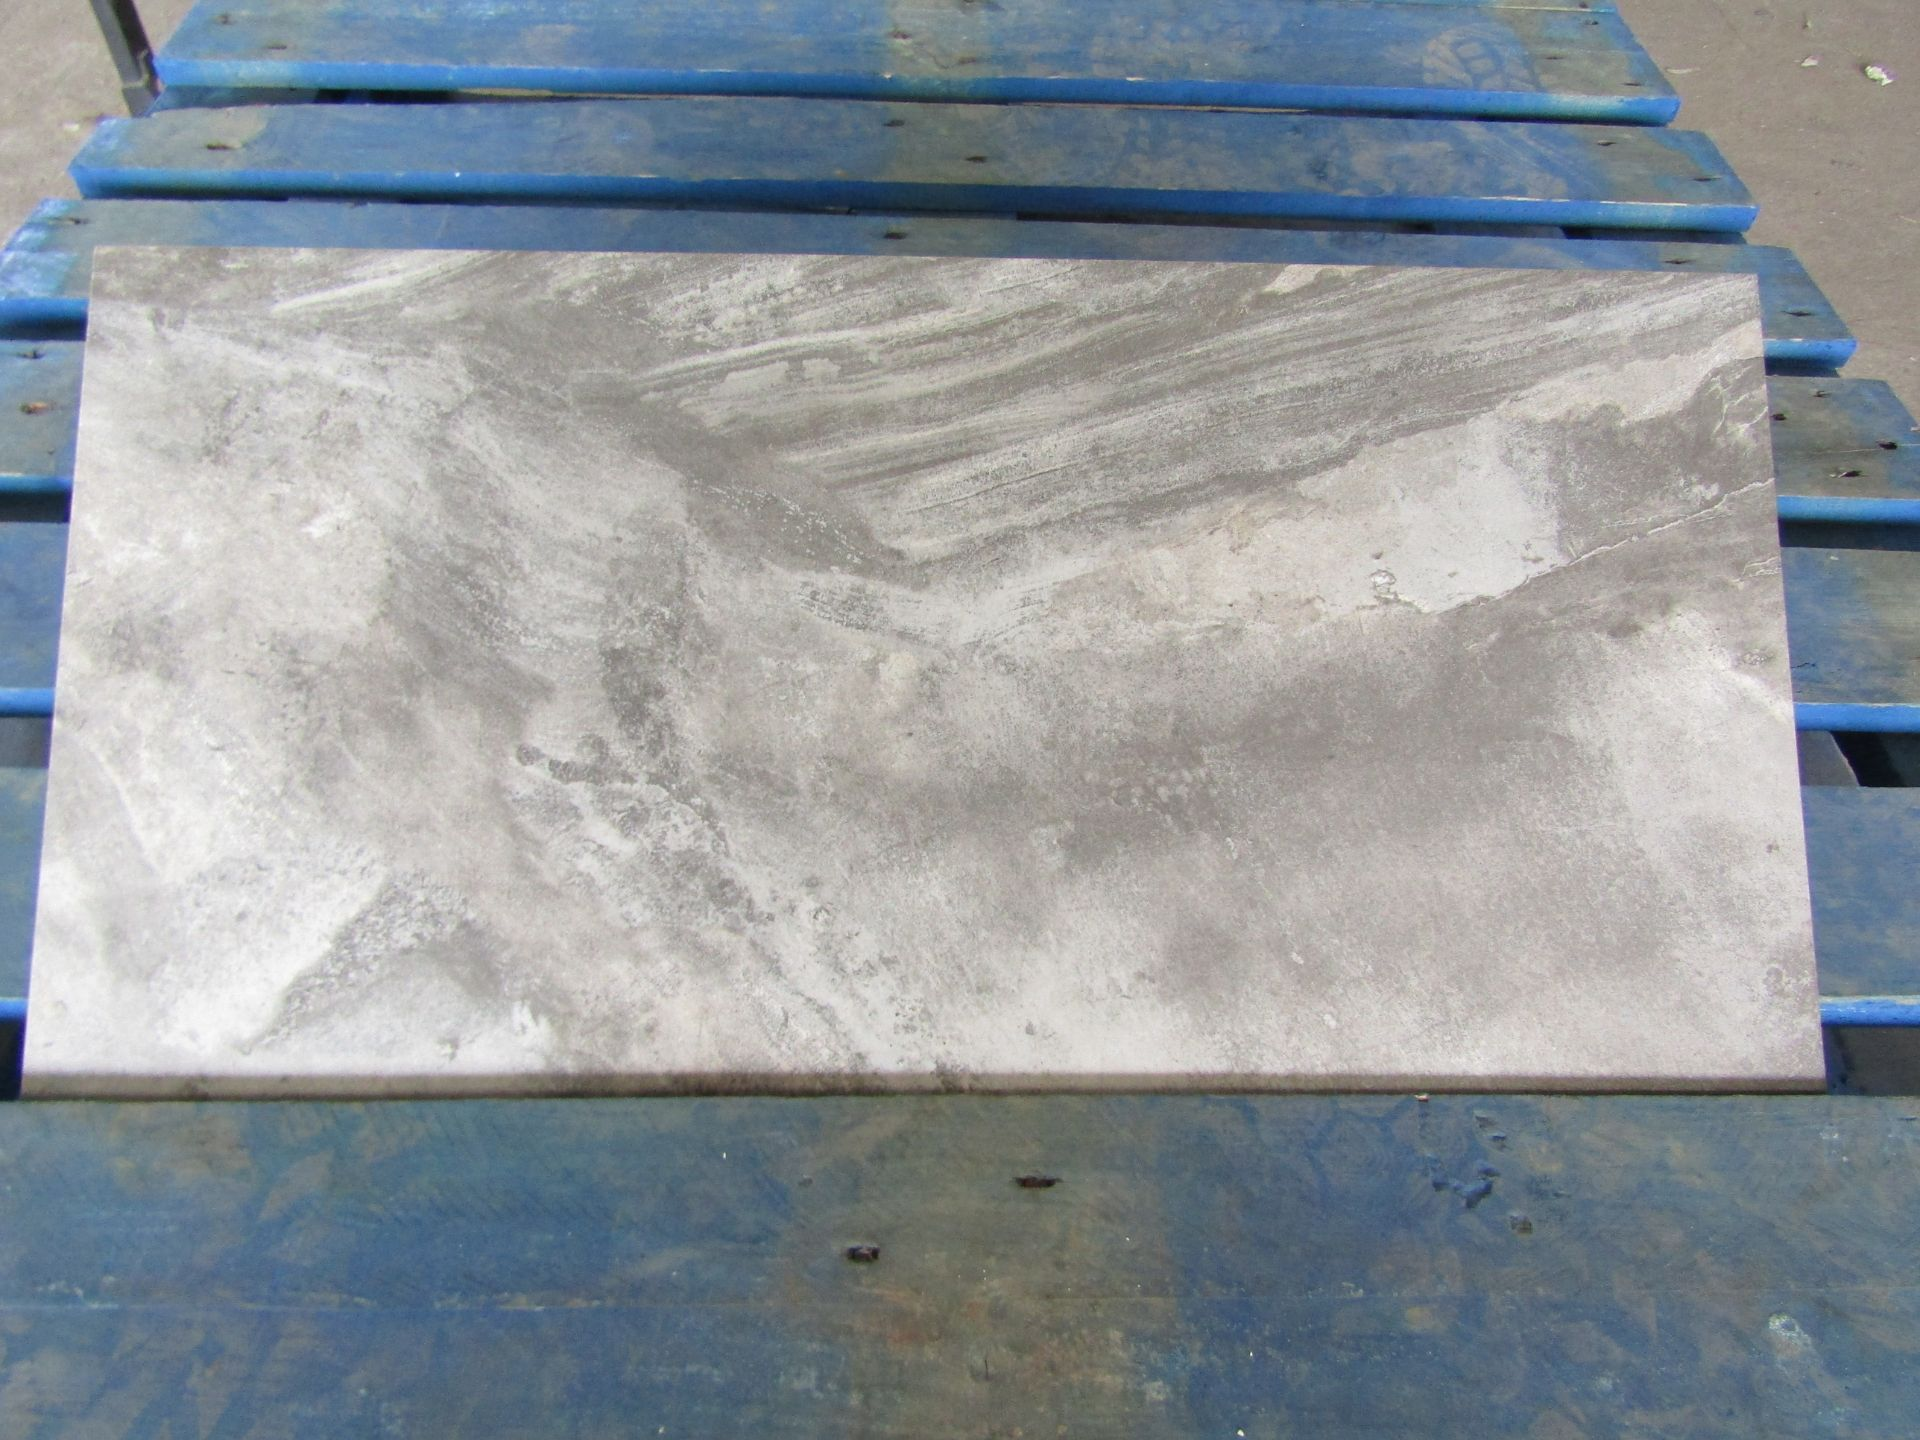 Pallet of 40x Packs of 5 Stone ware Slate Silk 300x600 wall and Floor Tiles By Johnsons, New, the